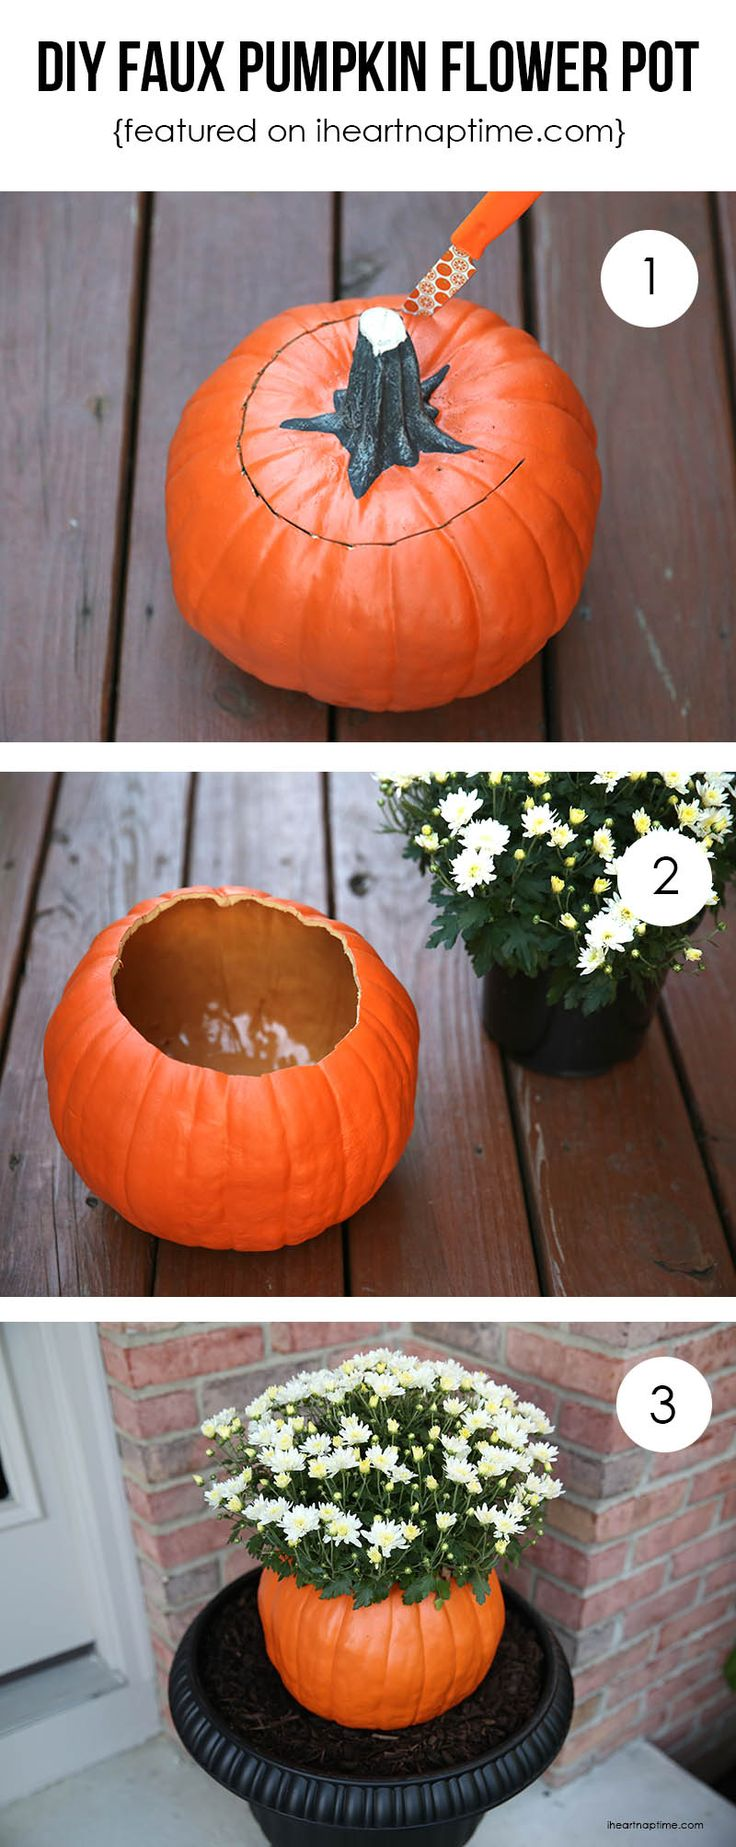 DIY faux pumpkin flower pot tutorial. Makes so much more sense (and will last way longer!) than a real pumpkin.